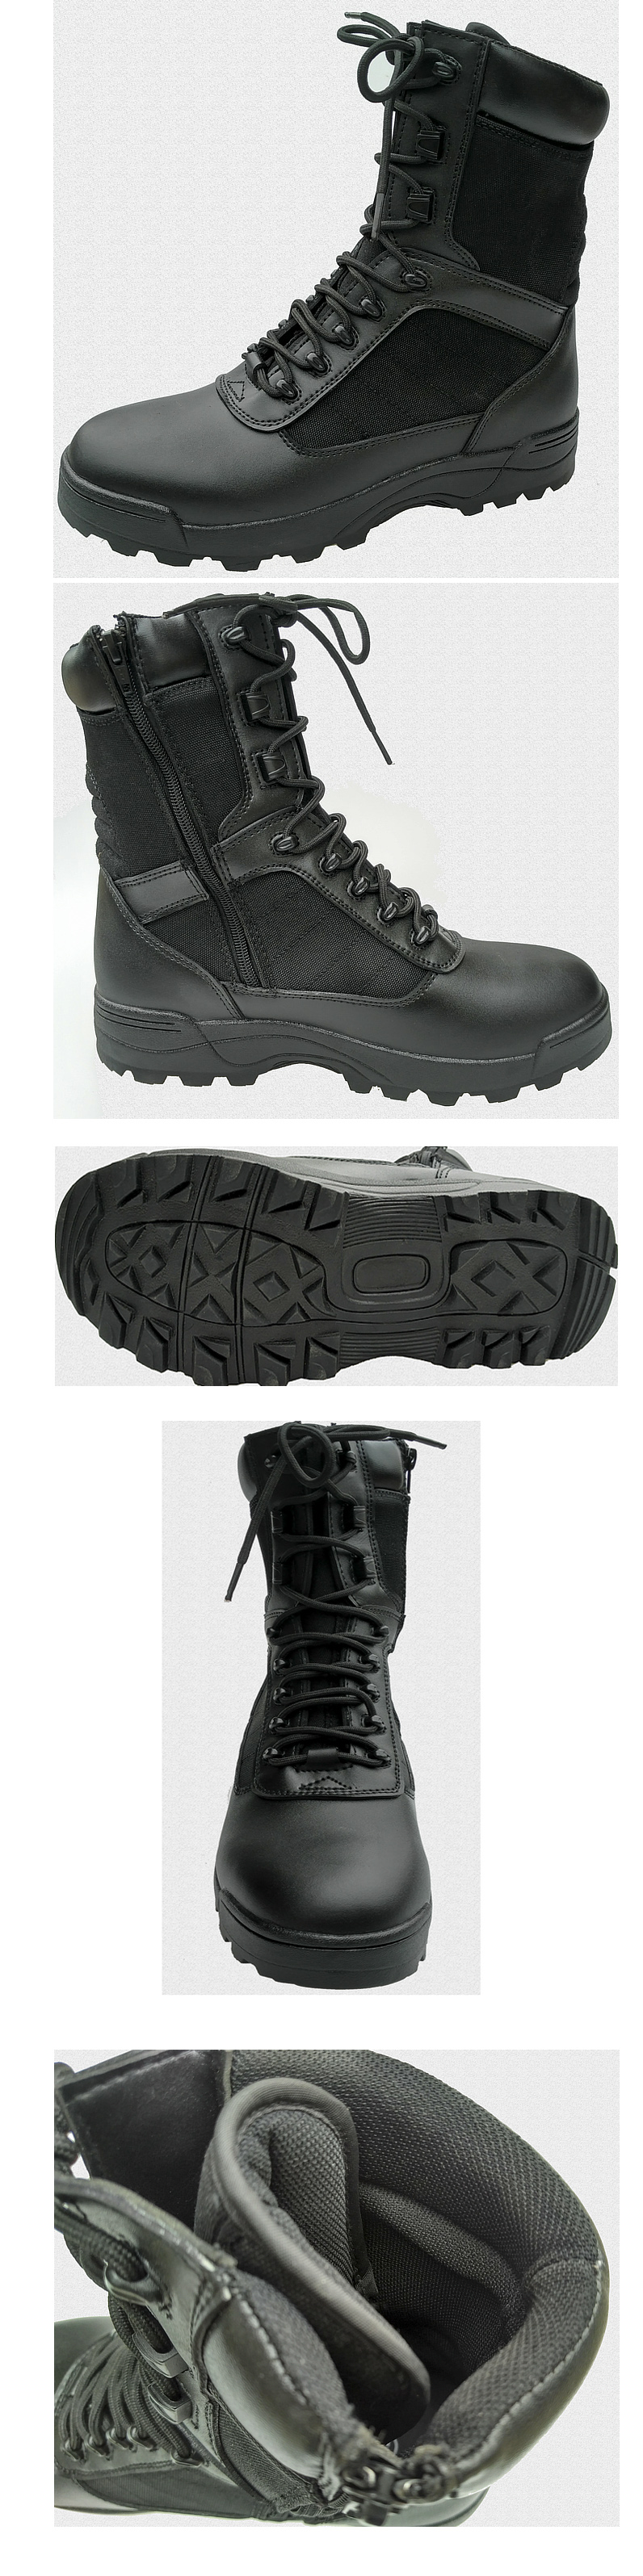 Steel Full Grain Leather Safety Shoes